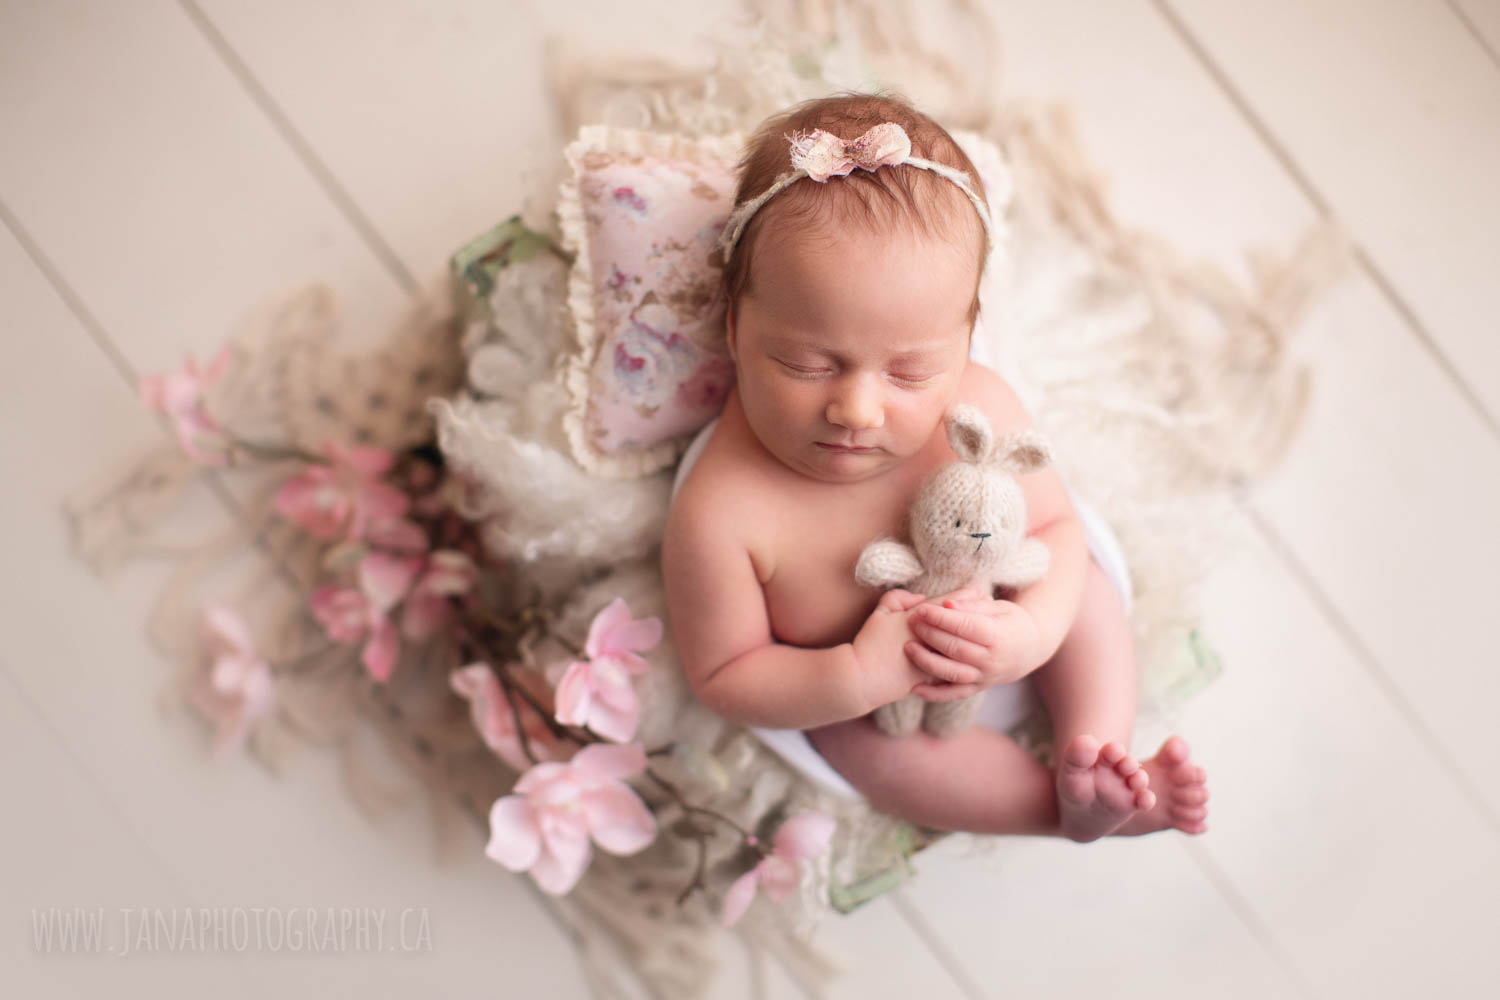 baby girl is holding teddy bear - bunny in a white bed - newborn photography burnaby